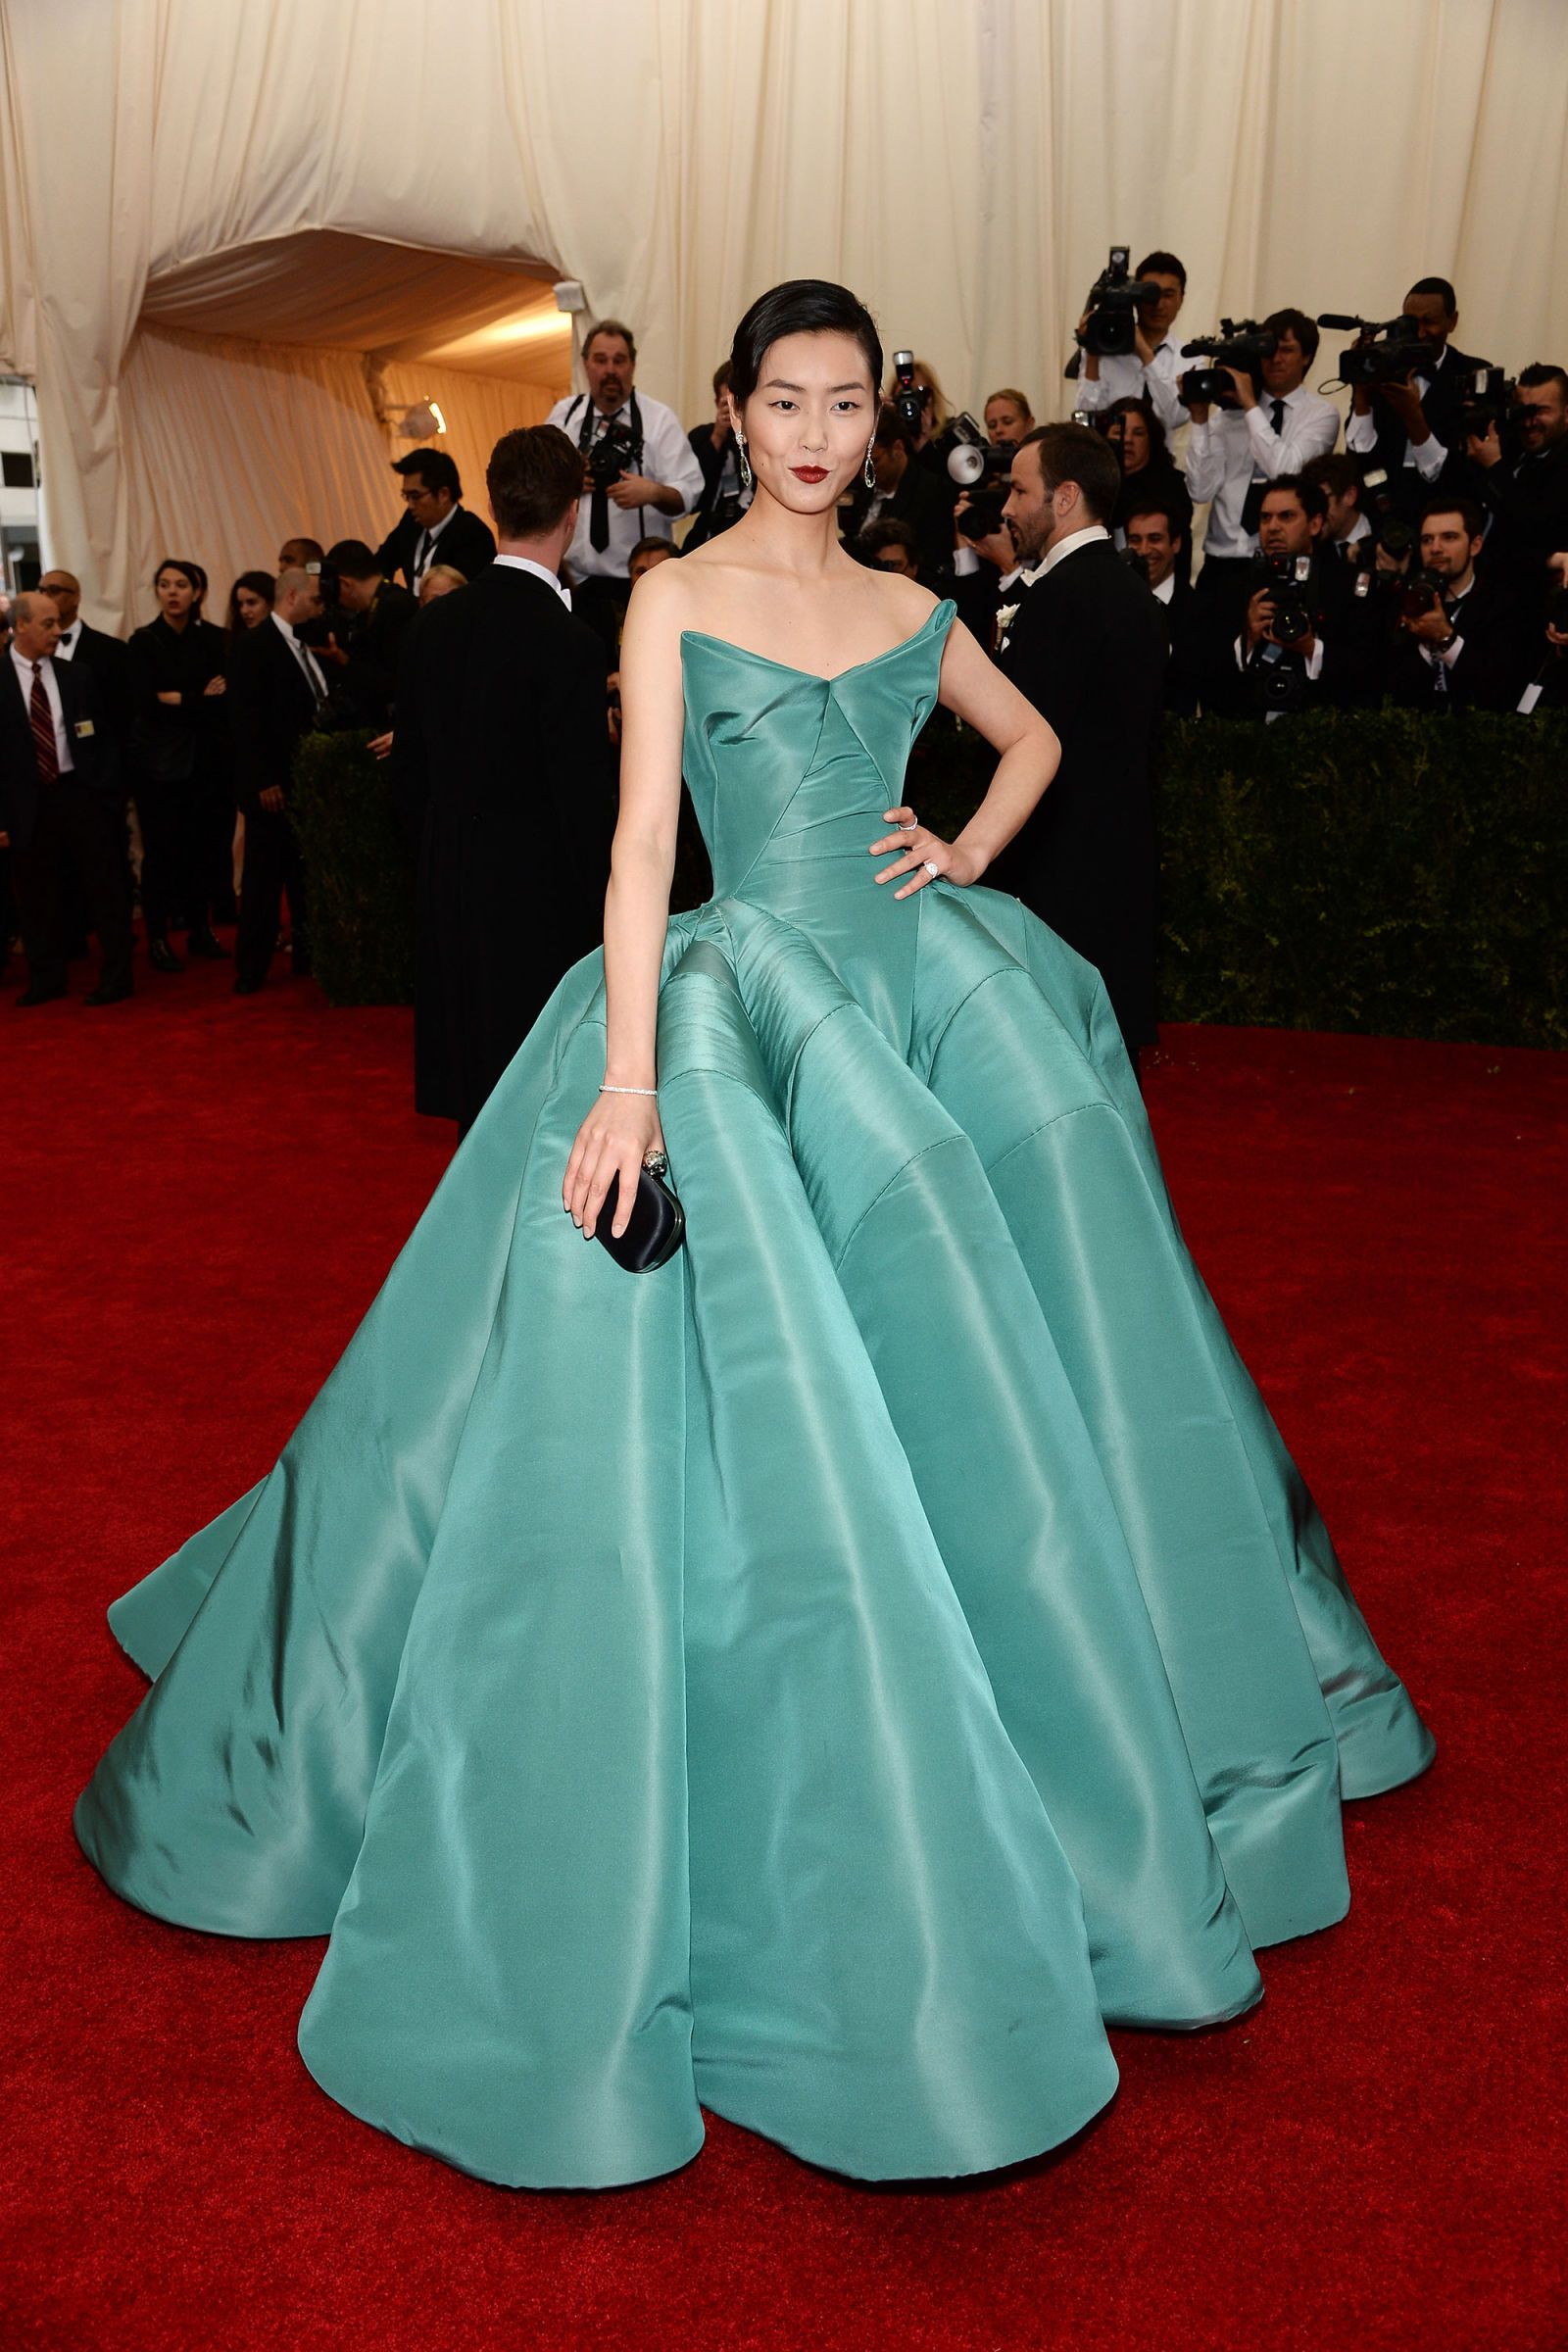 Game Changing Dresses of 2014 - The Best Celebrity Dresses of 2014